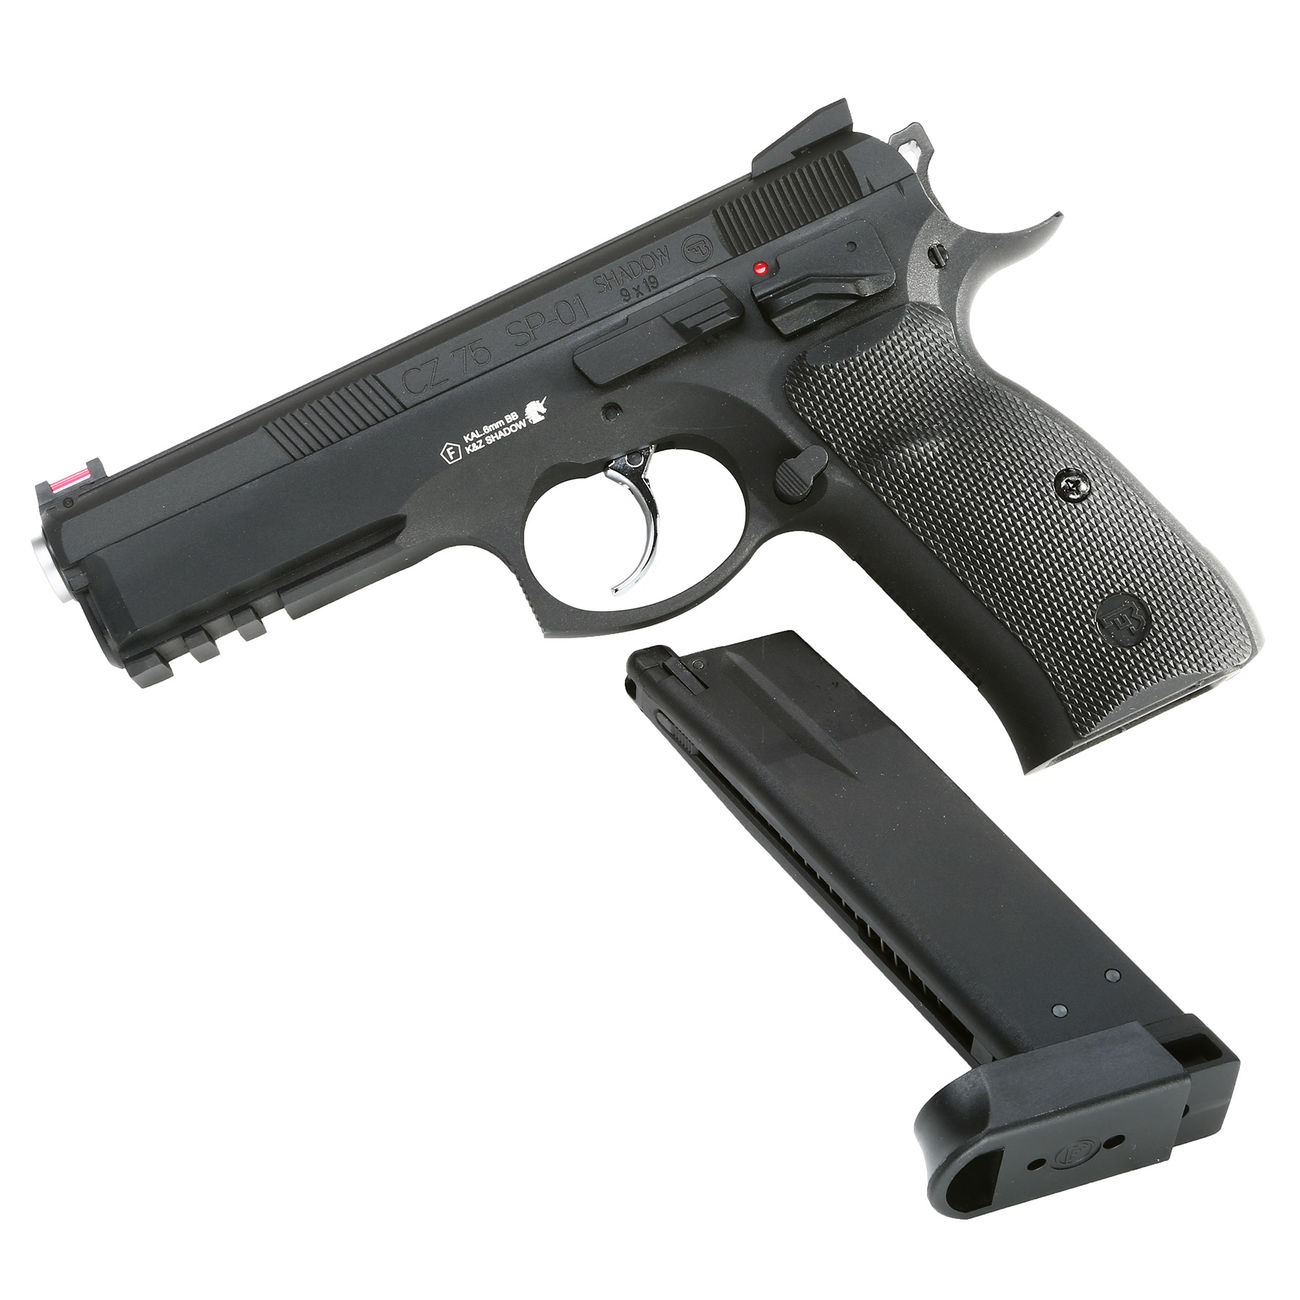 KJ Works CZ 75 SP-01 Shadow Vollmetall GBB 6mm BB schwarz 4